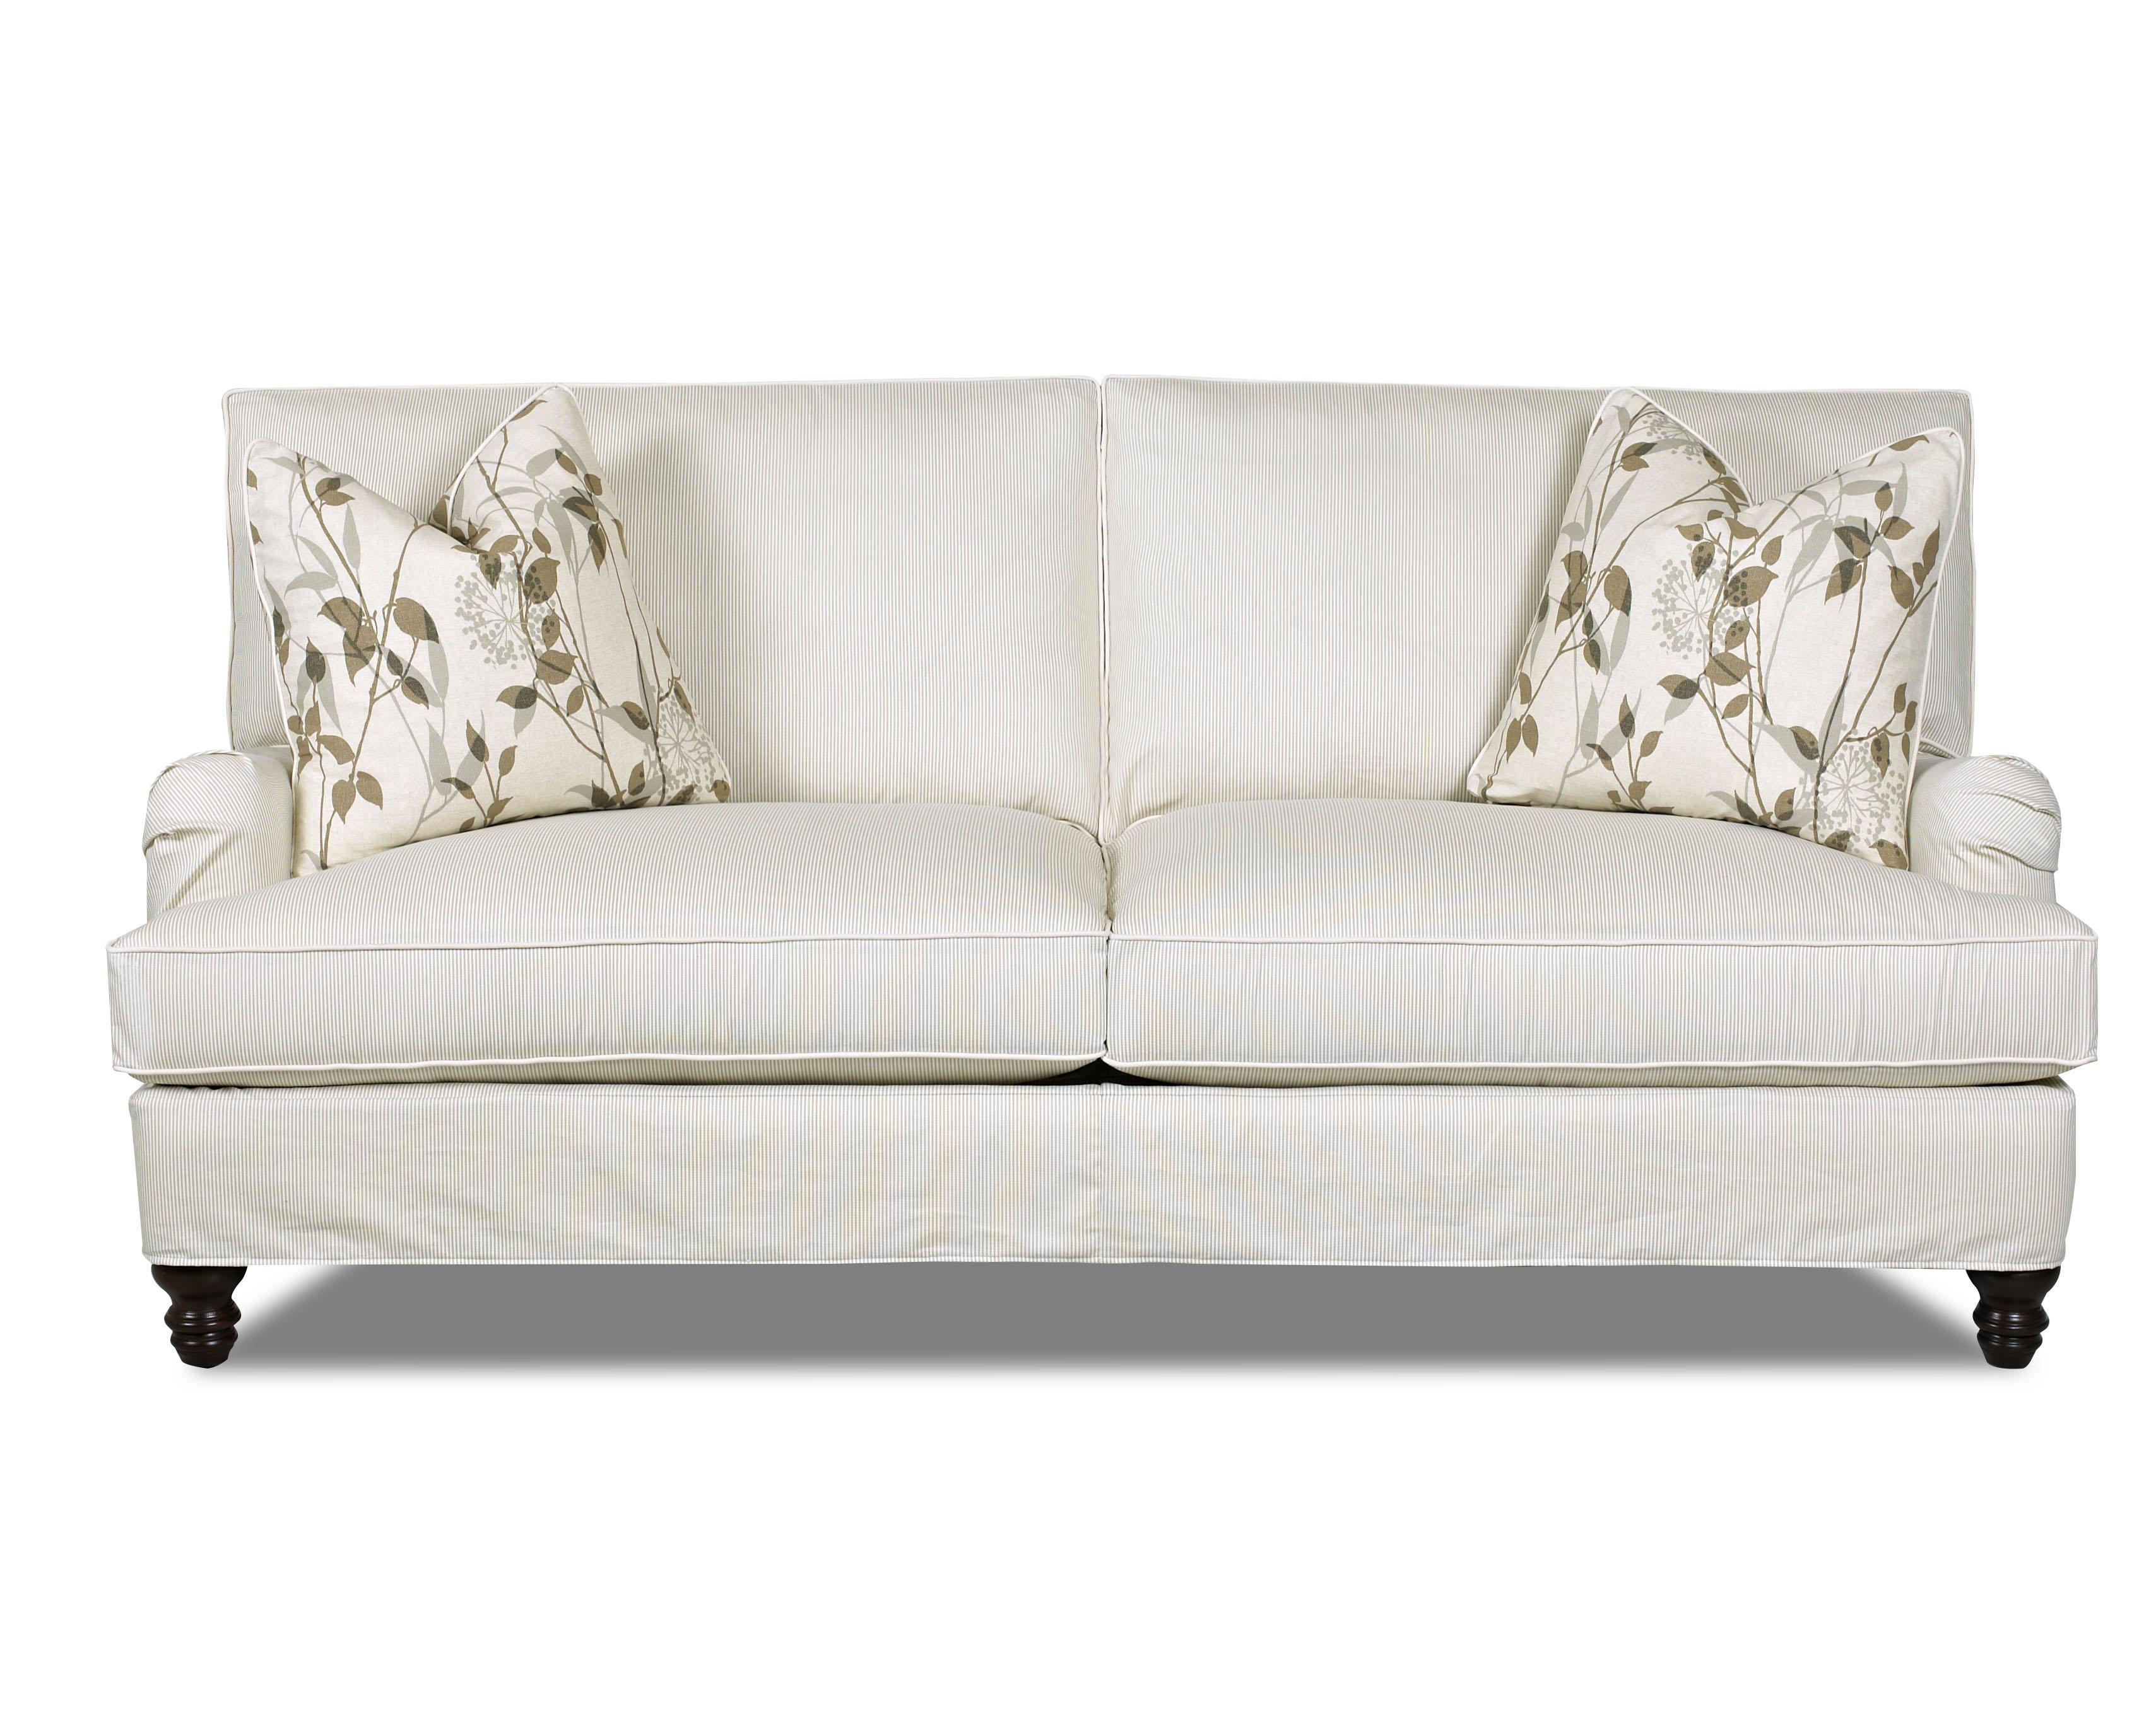 Traditional Stationary Sofa with Slip Cover and Charles of London